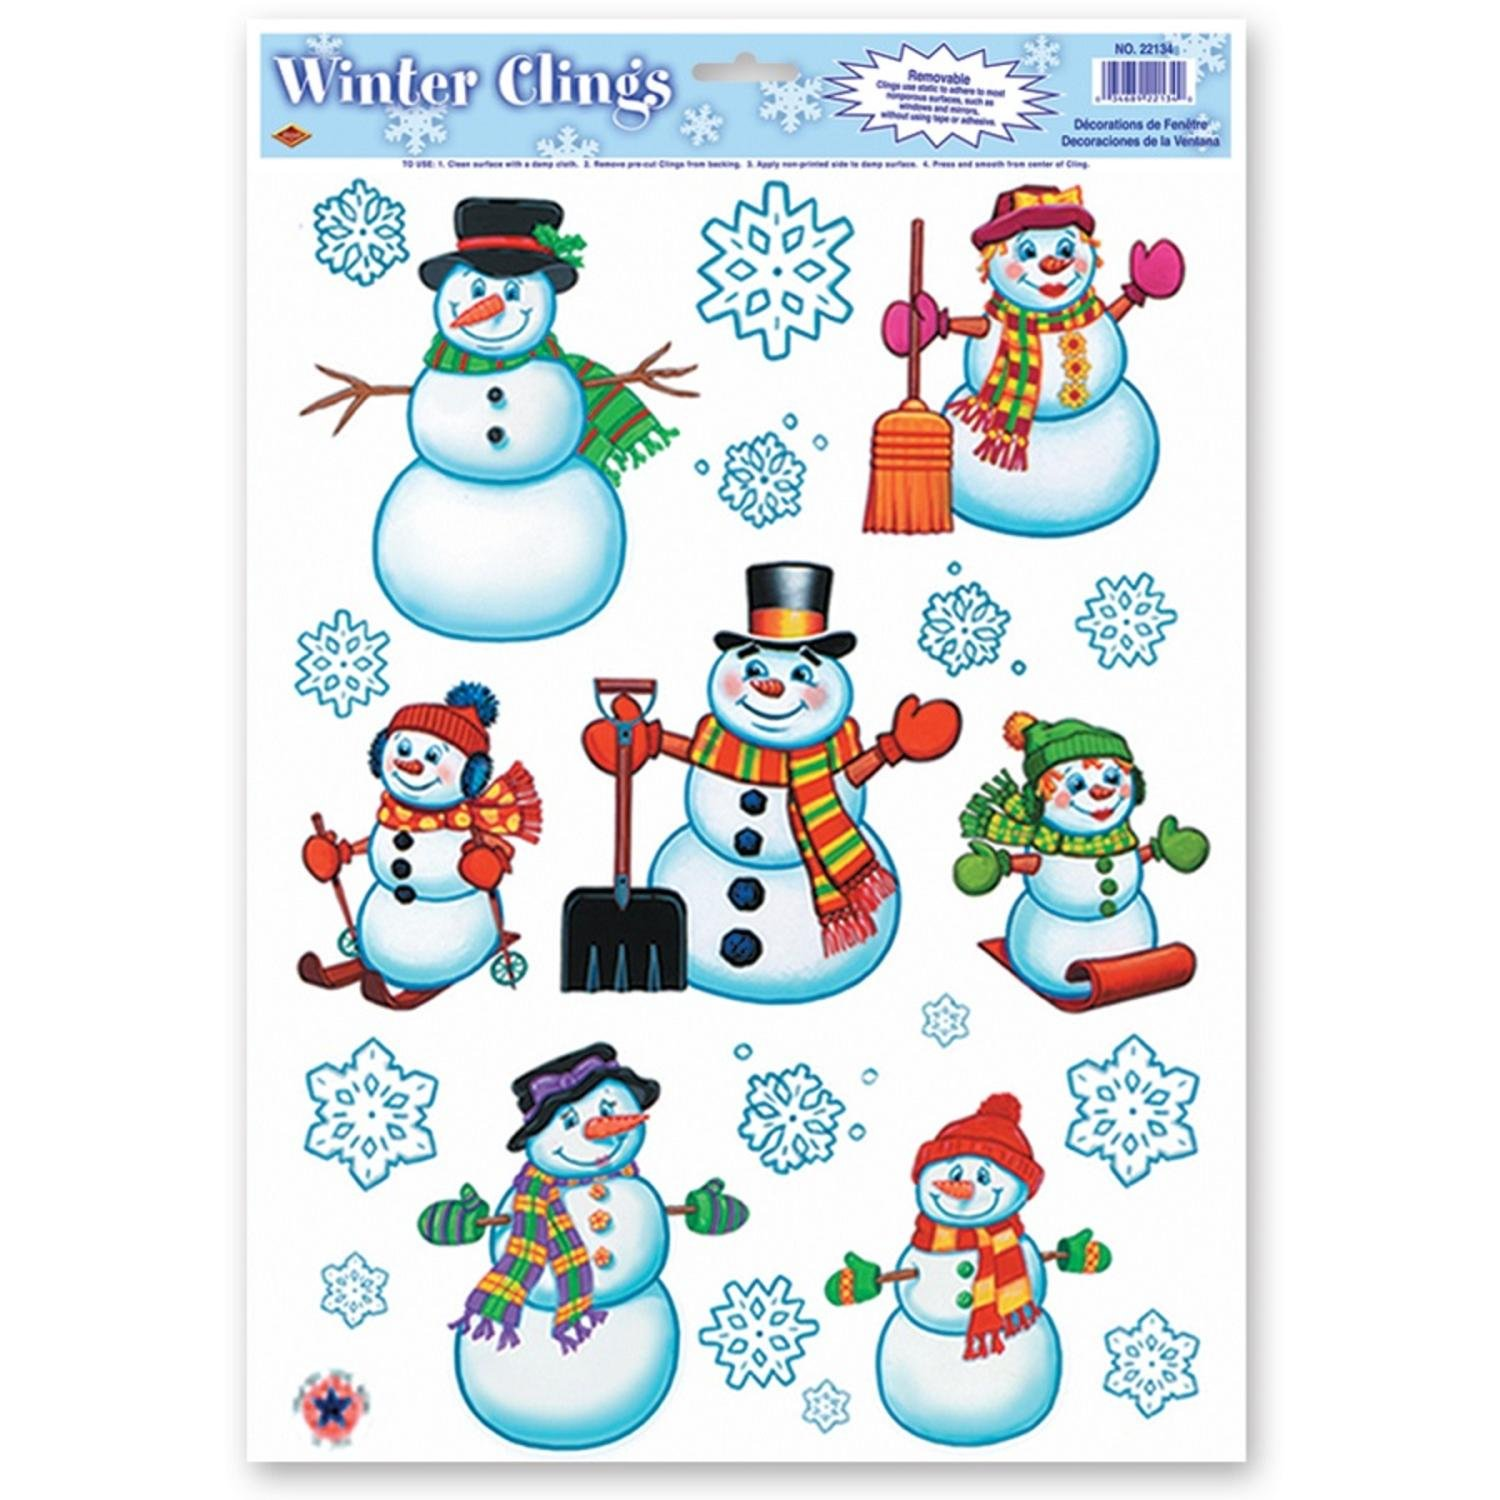 Club Pack of 192 Snowman Family and Snowflakes Window Clings Christmas Decorations 17''